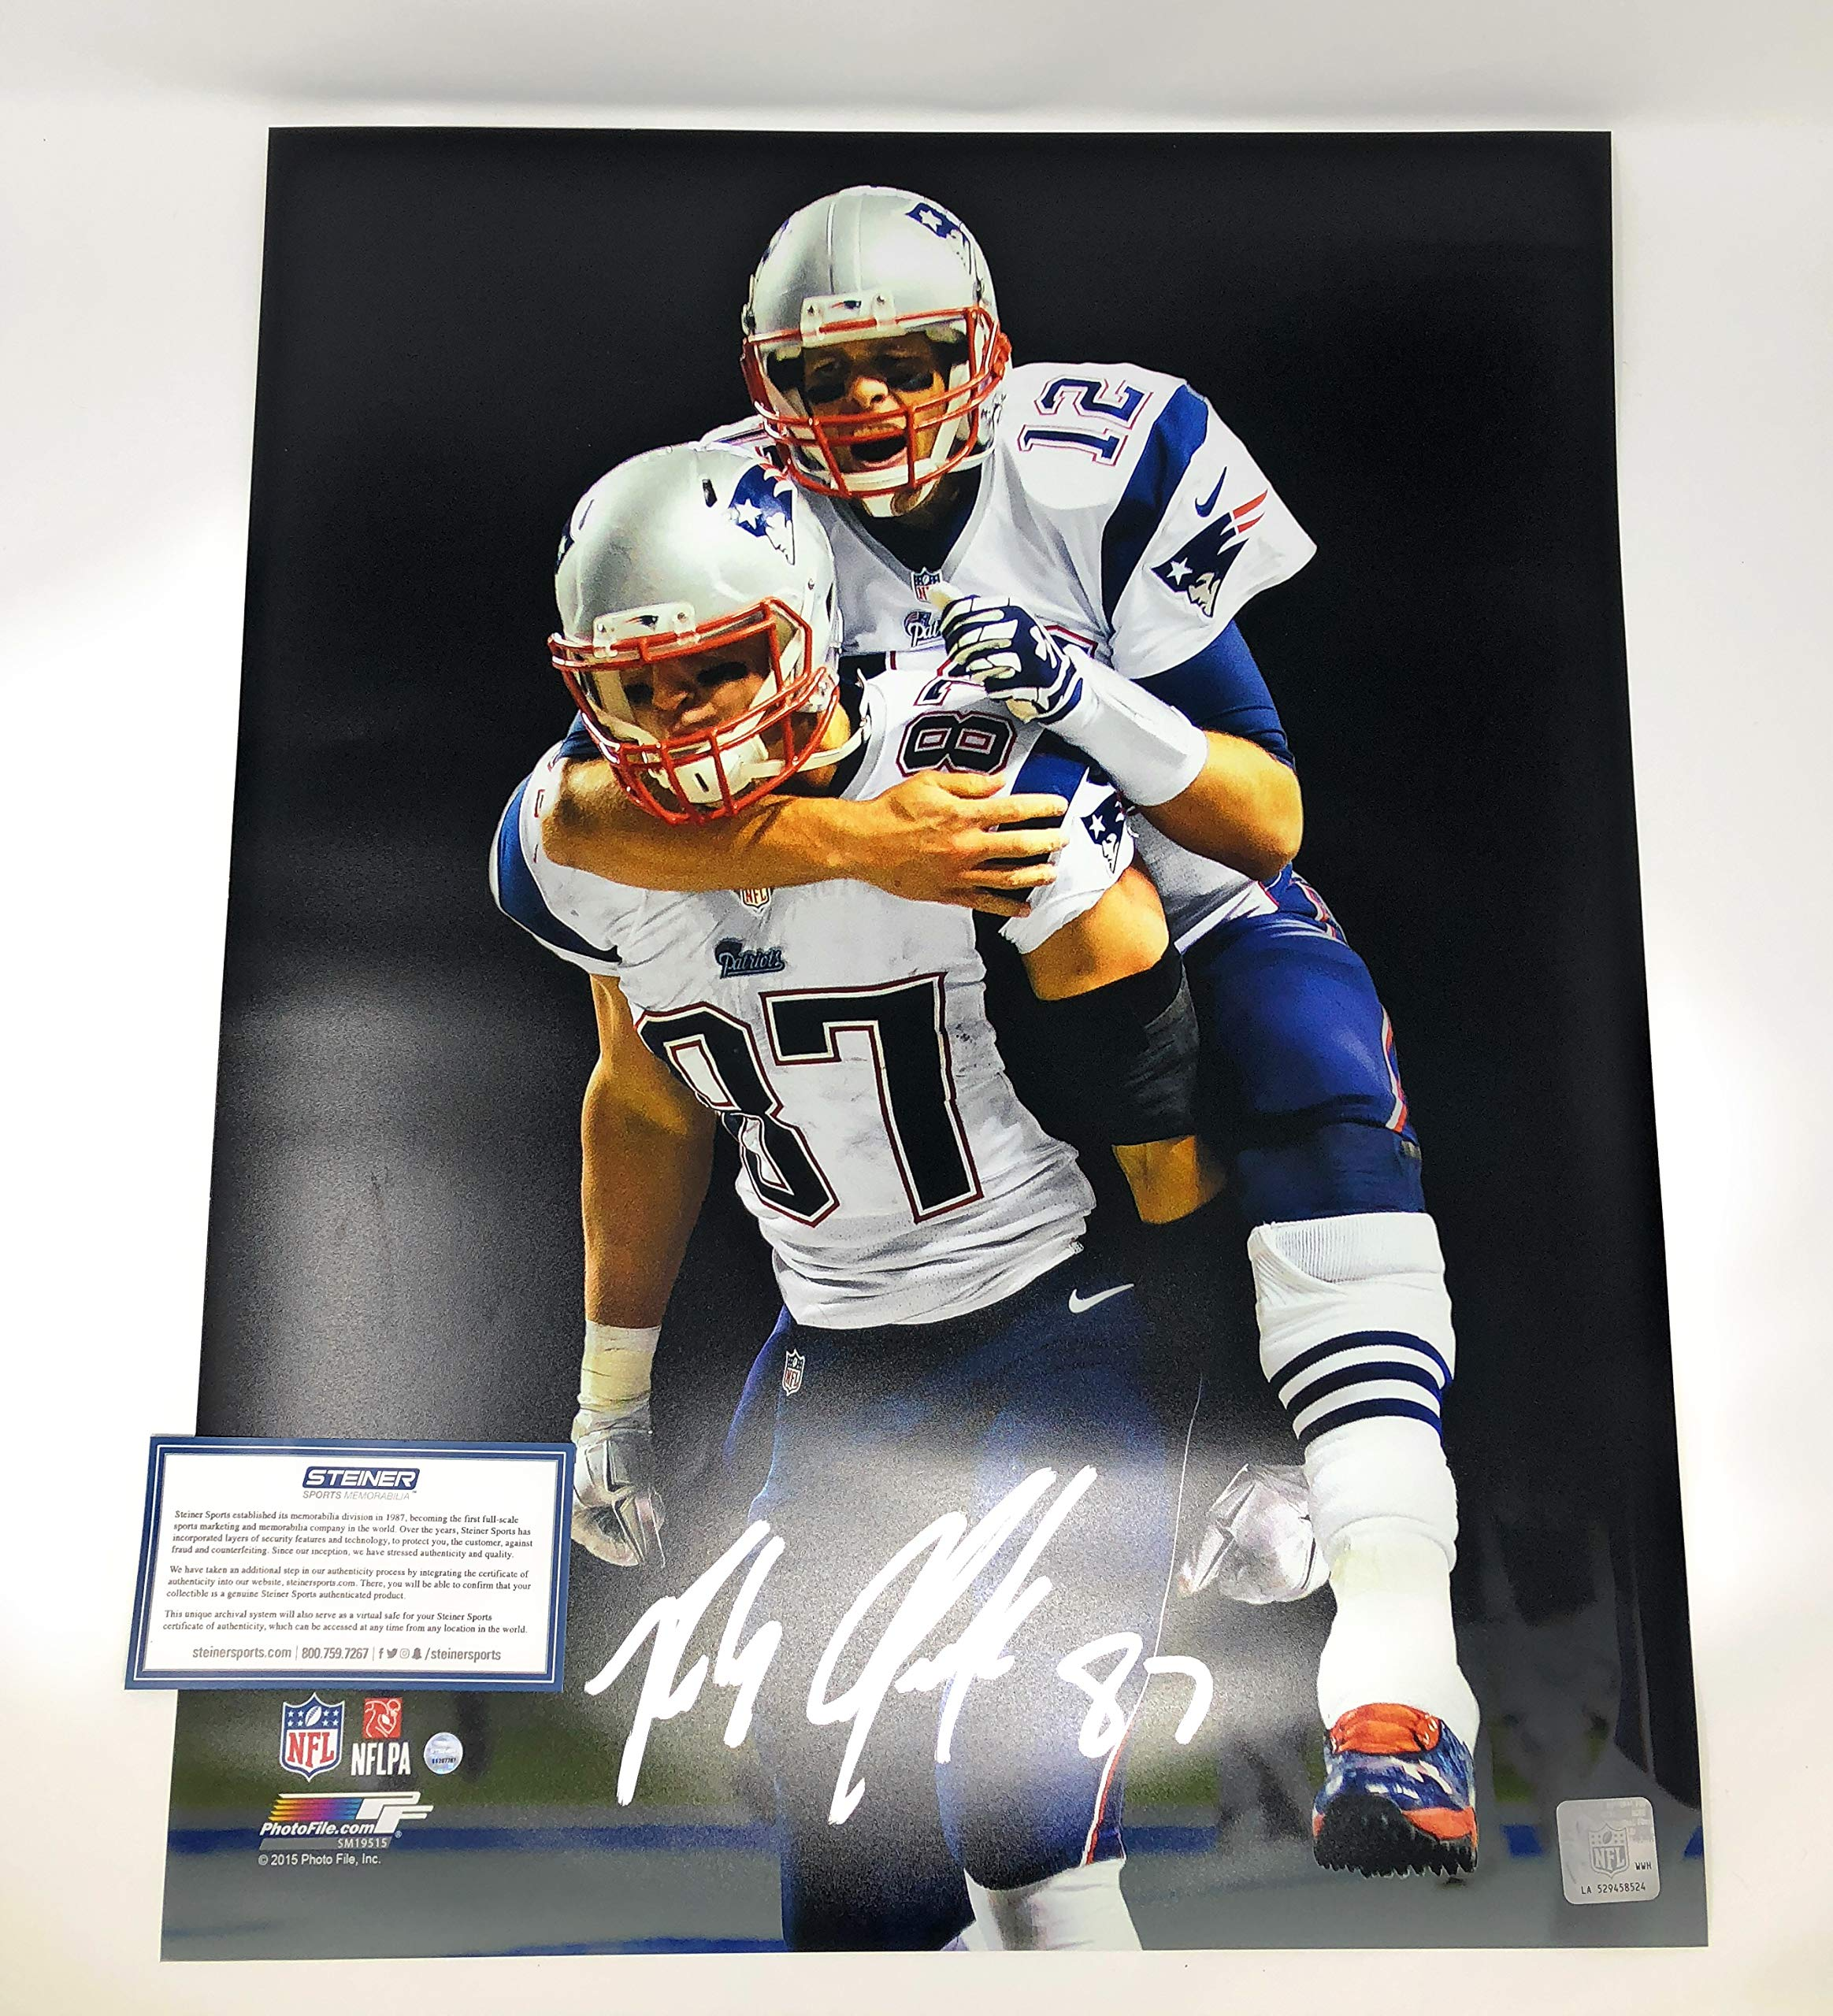 Rob Gronkowski New England Patriots Signed Autograph 16x20 Photo Photograph Steiner Sports Certified